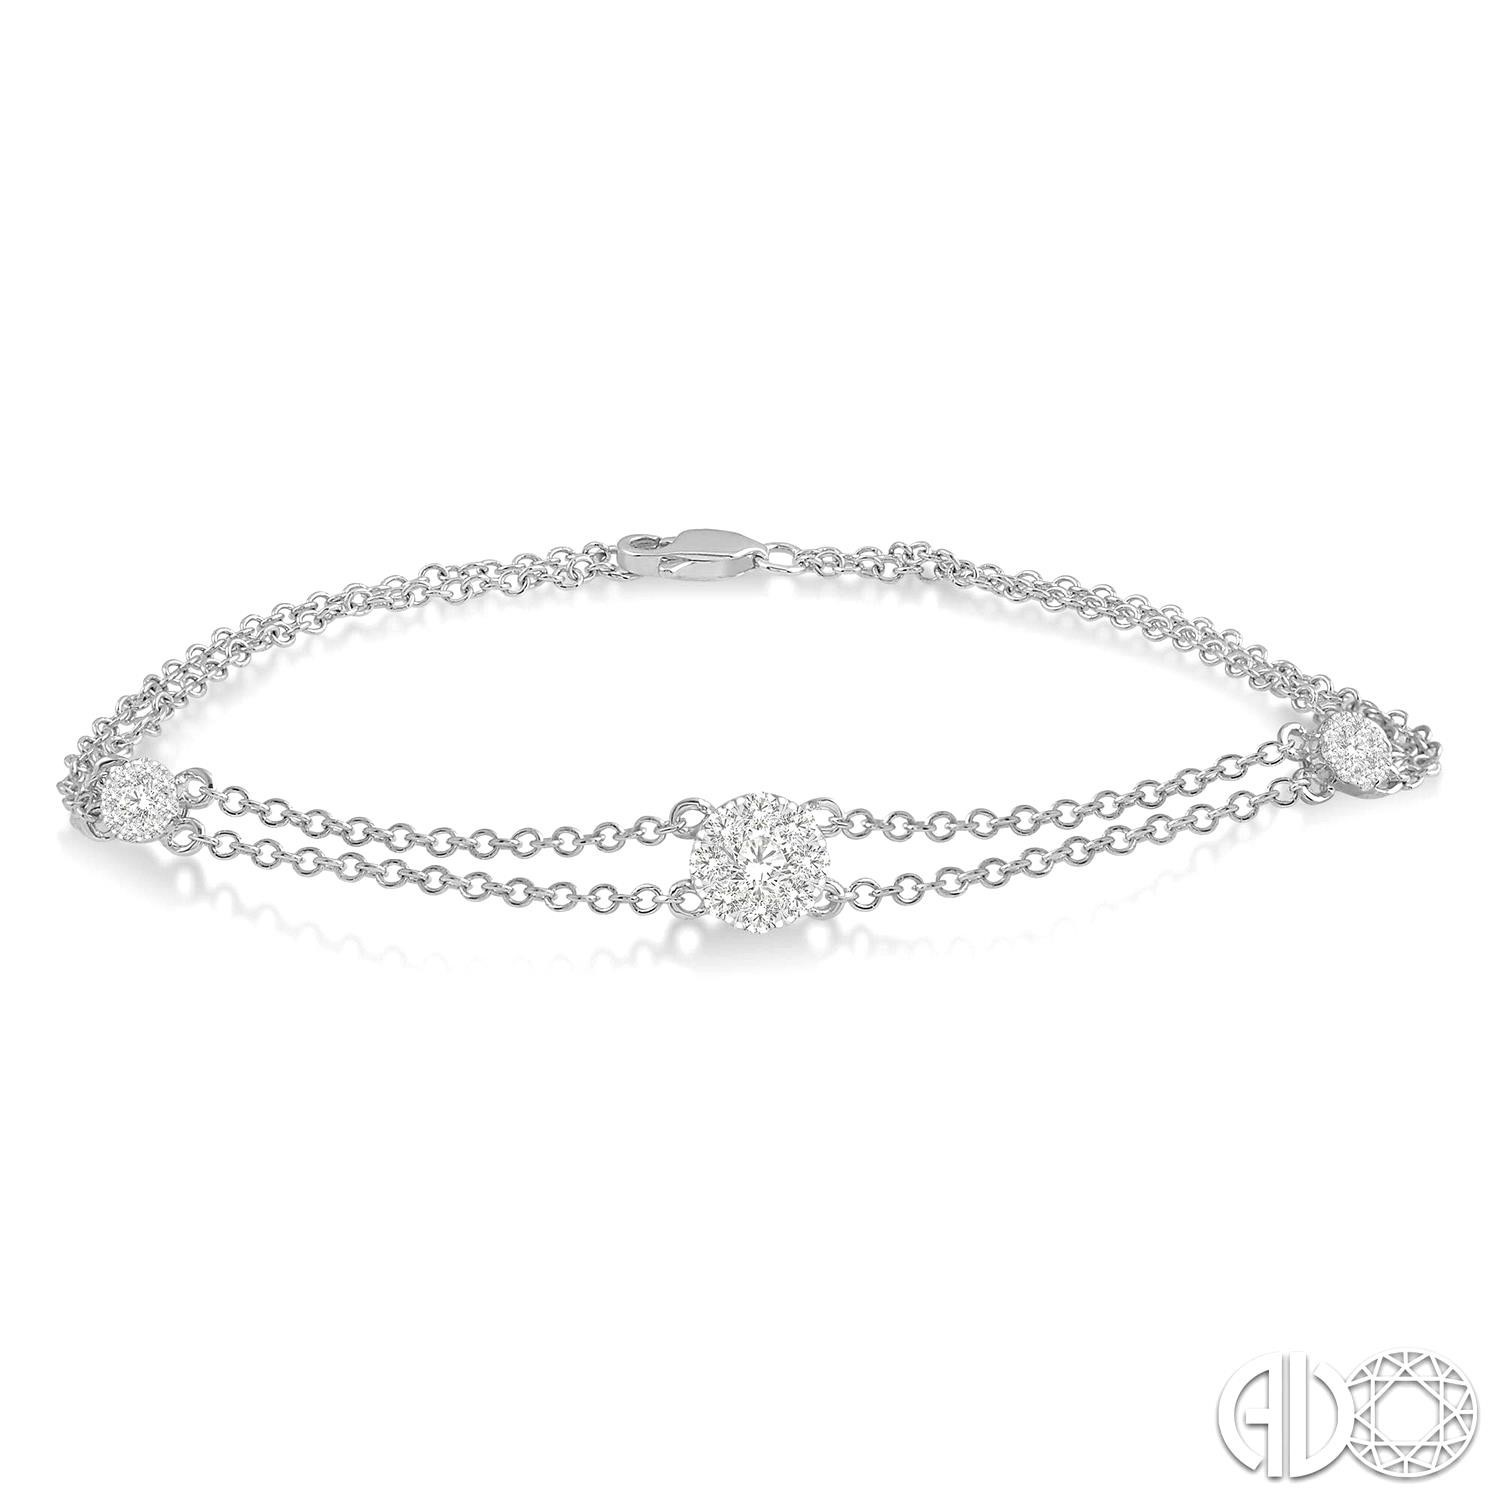 1/2 Ctw Round Cut Diamond Lovebright Double Link Chain Bracelet in 14K White Gold